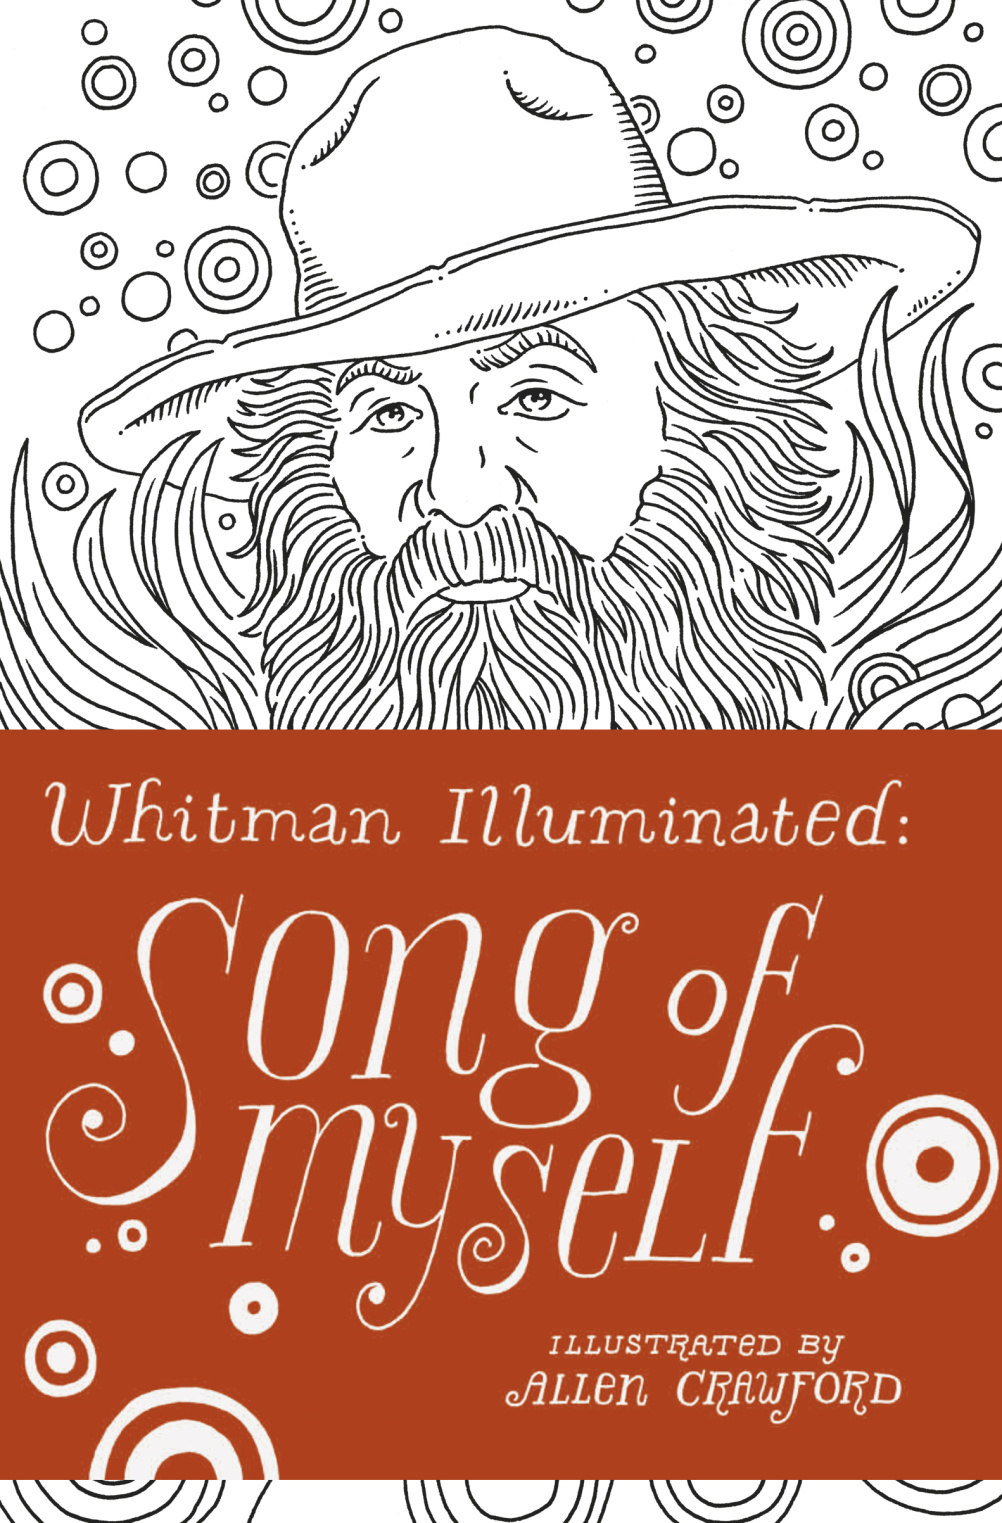 Whitman Illuminated cover